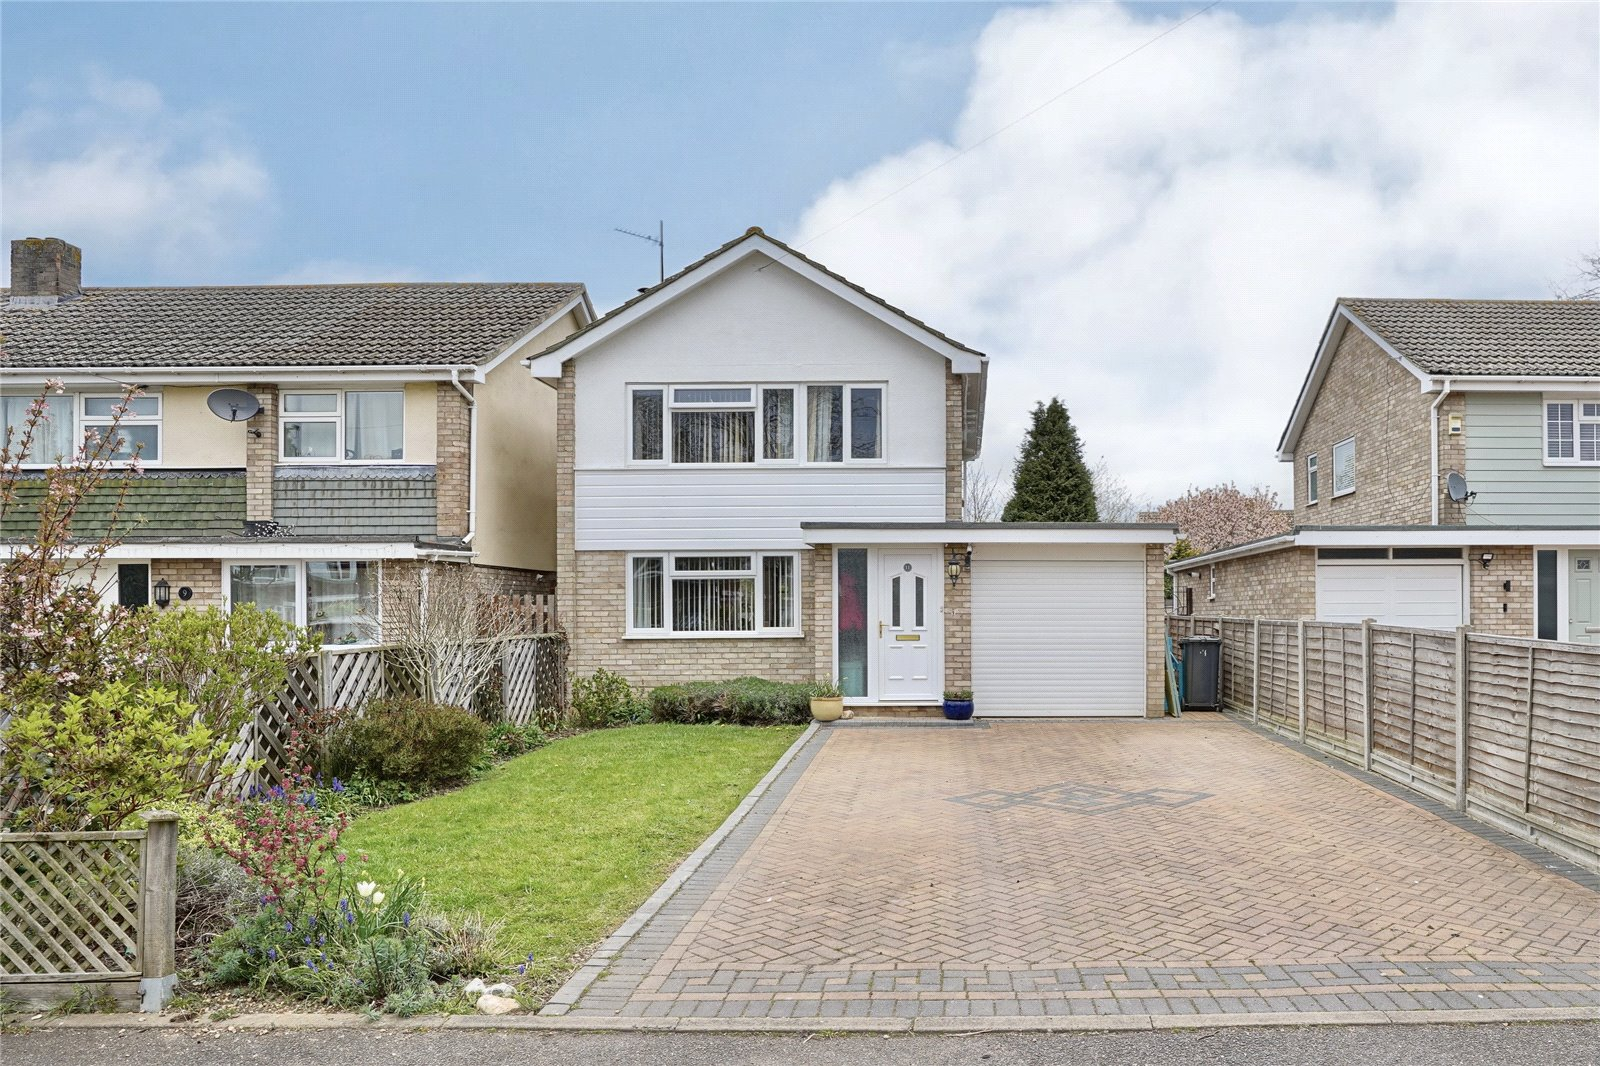 3 bed house for sale in St. Ives, PE27 5QH - Property Image 1